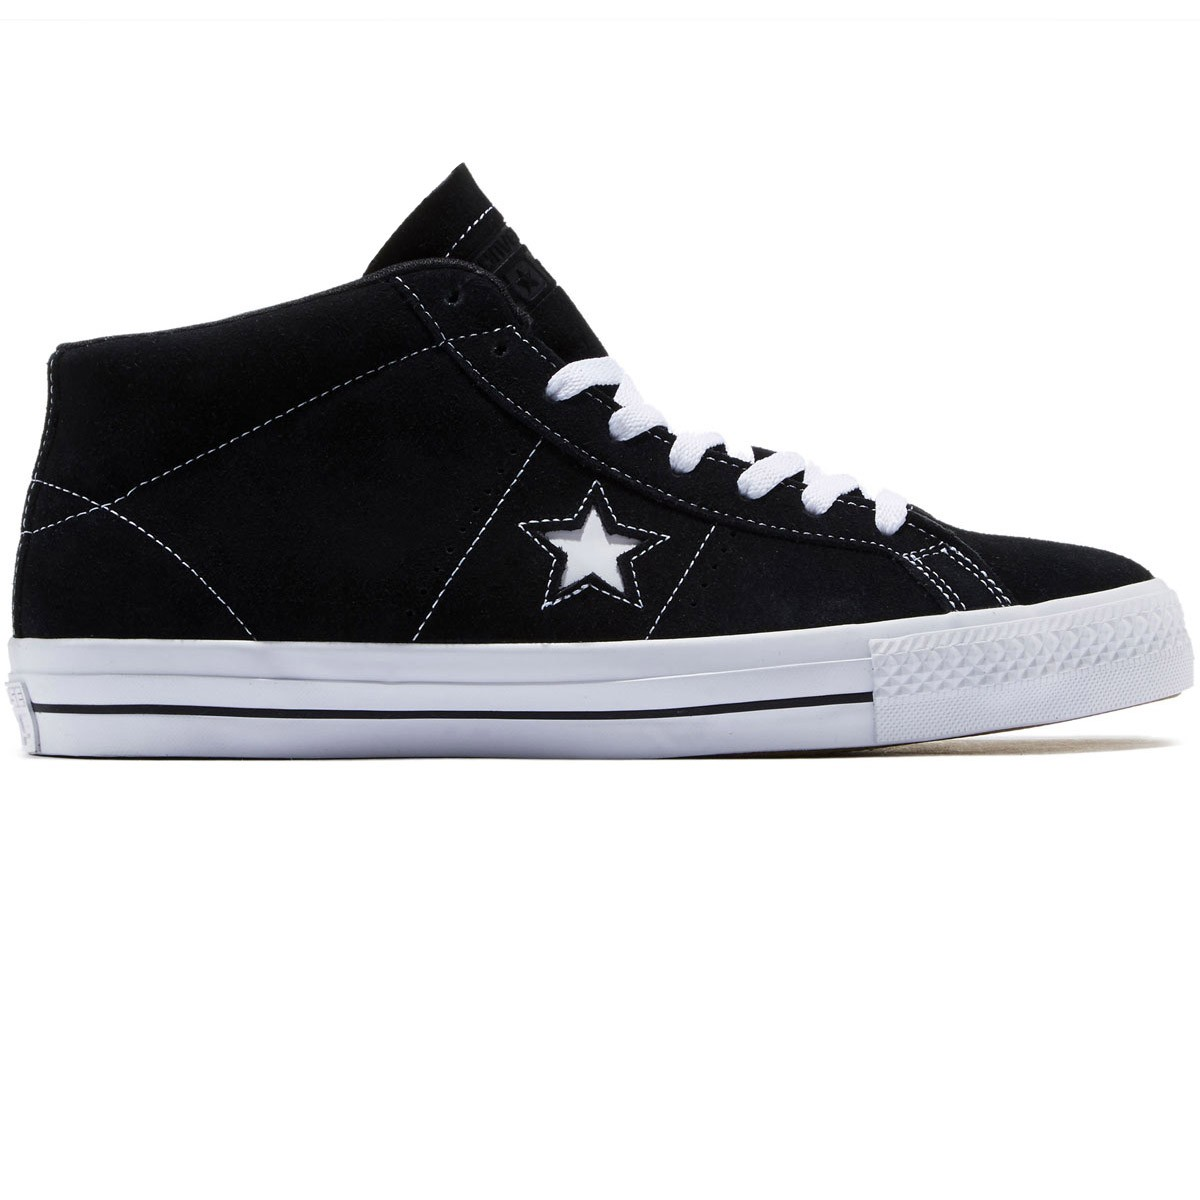 Converse One Star Pro Shoes - Nightime